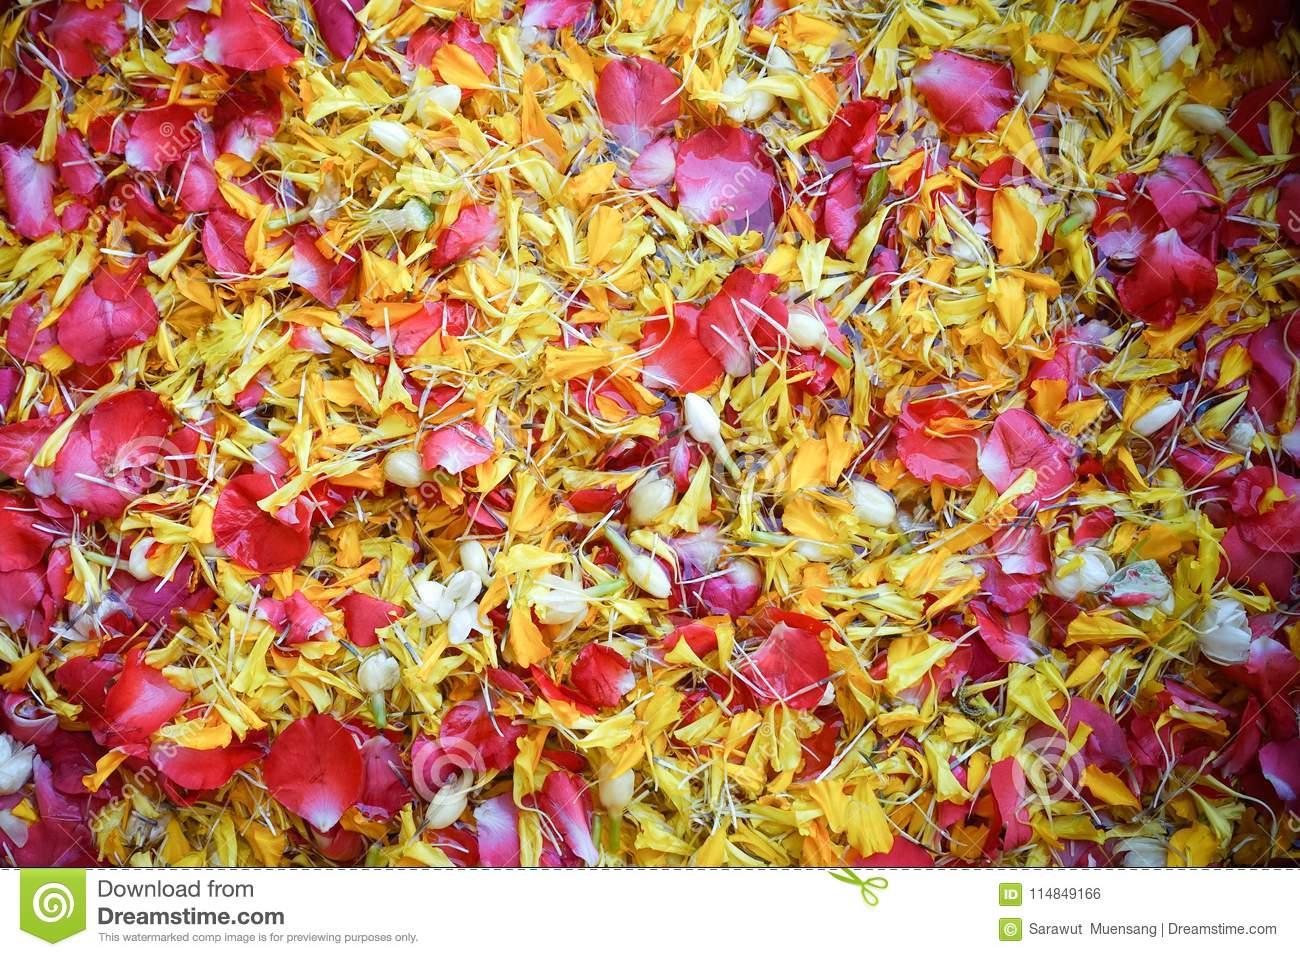 A sacred water made of fresh water spreading by flower petals, used for pouring on the older`s hand during Thai New Year